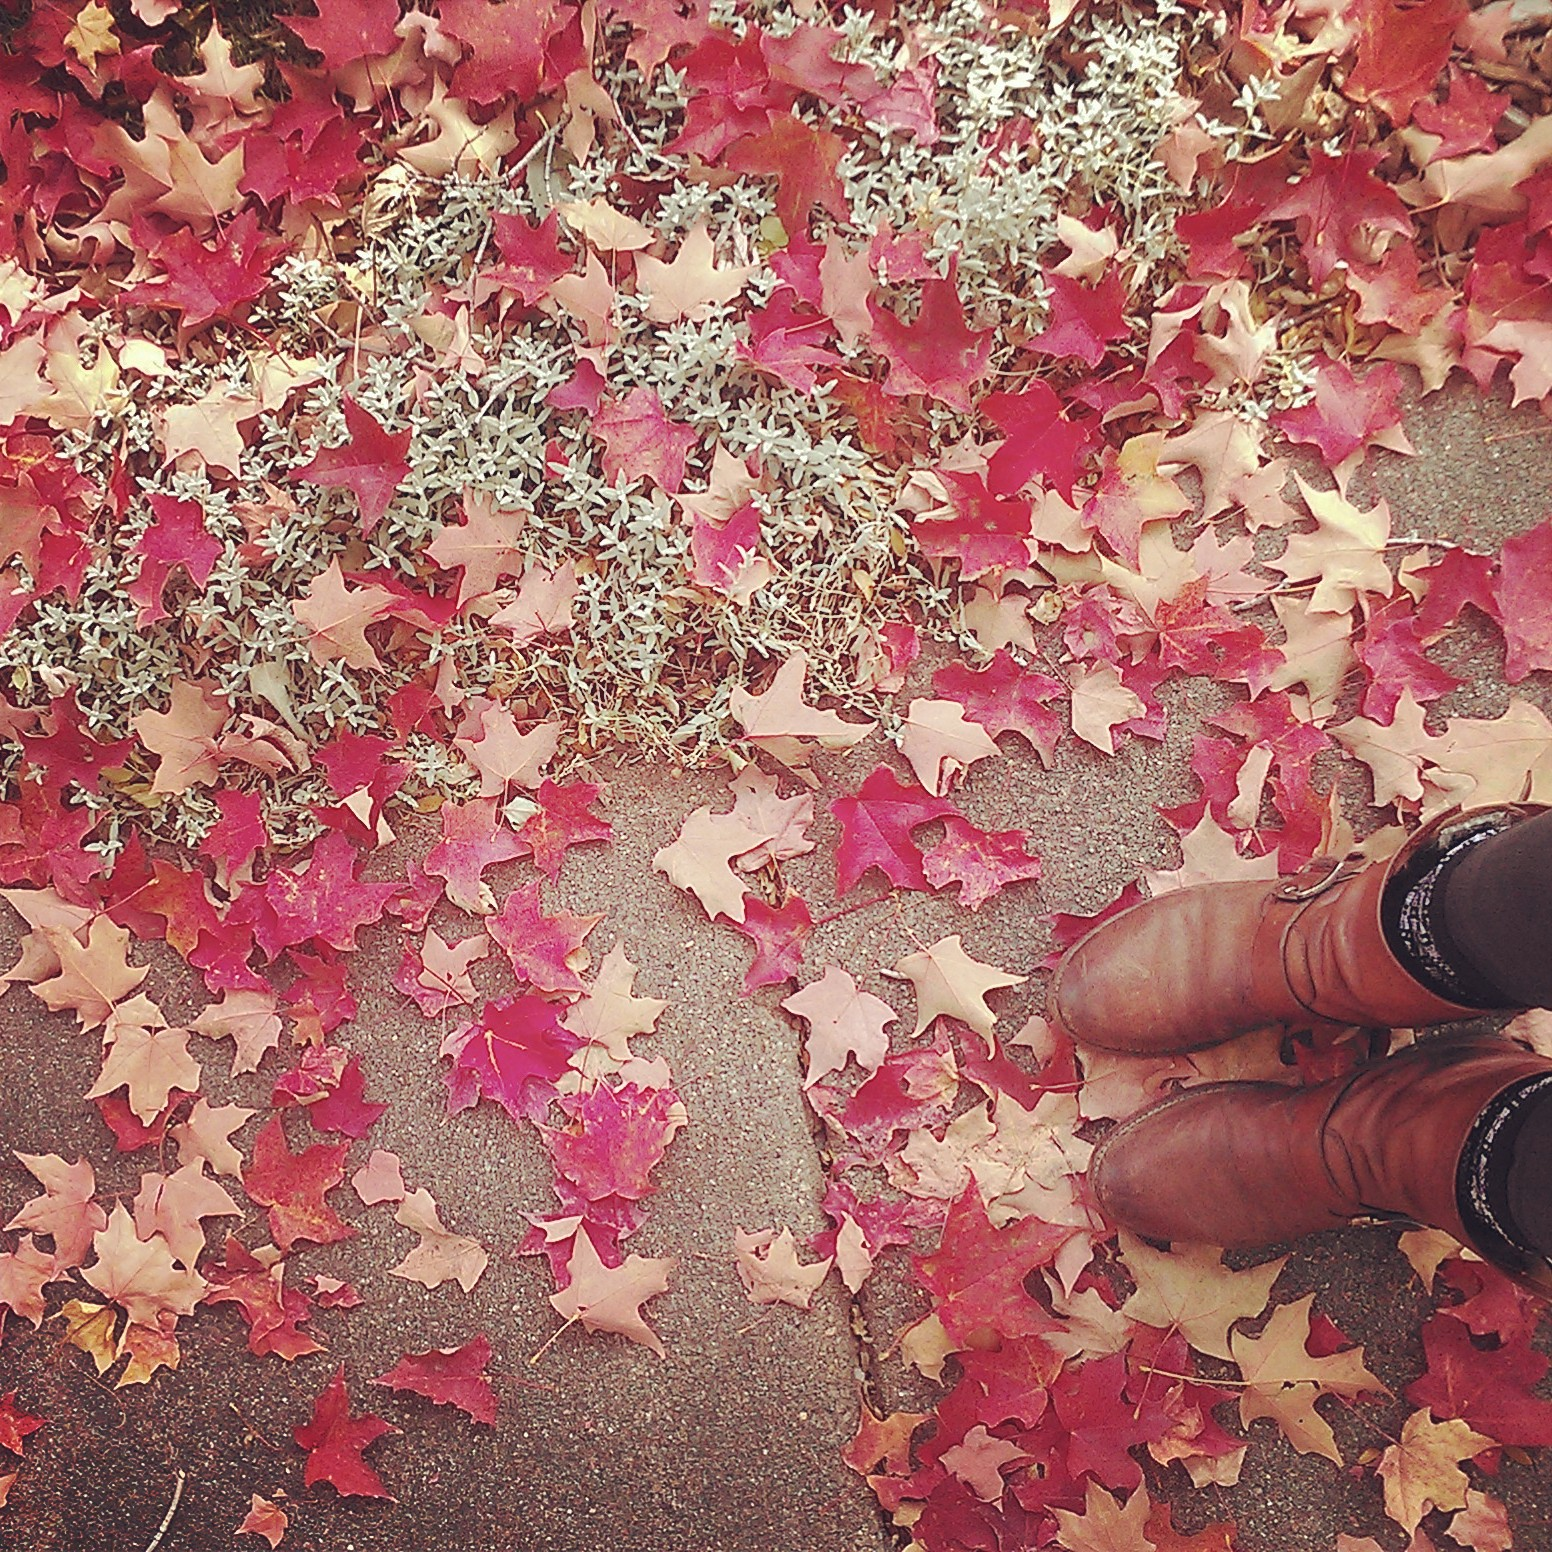 My boots in the red maple leaves